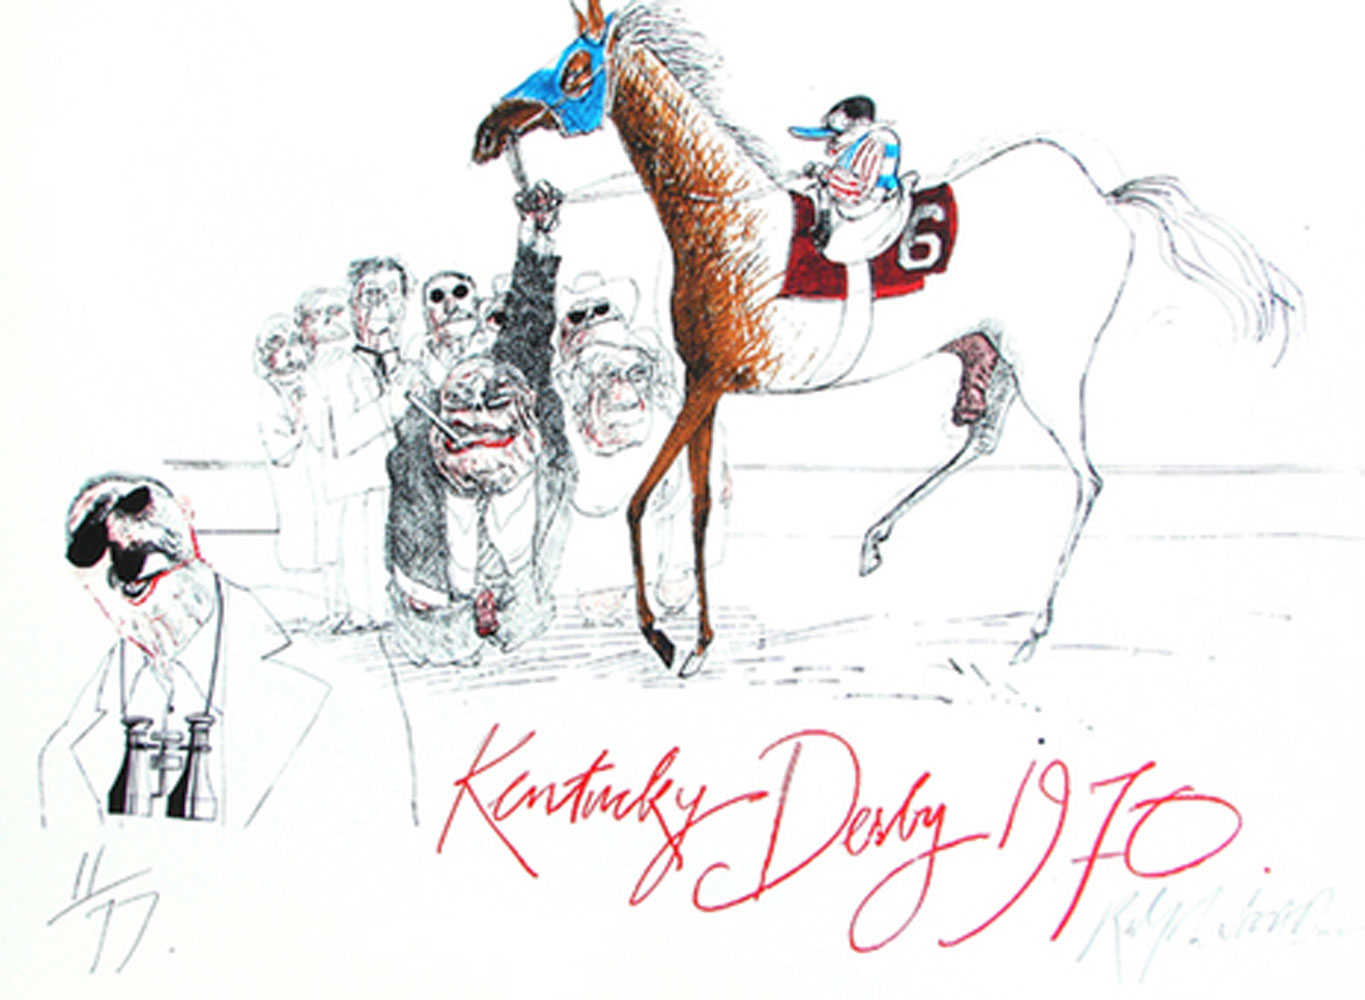 Kentucky Derby is Decadent And Depraved 2000